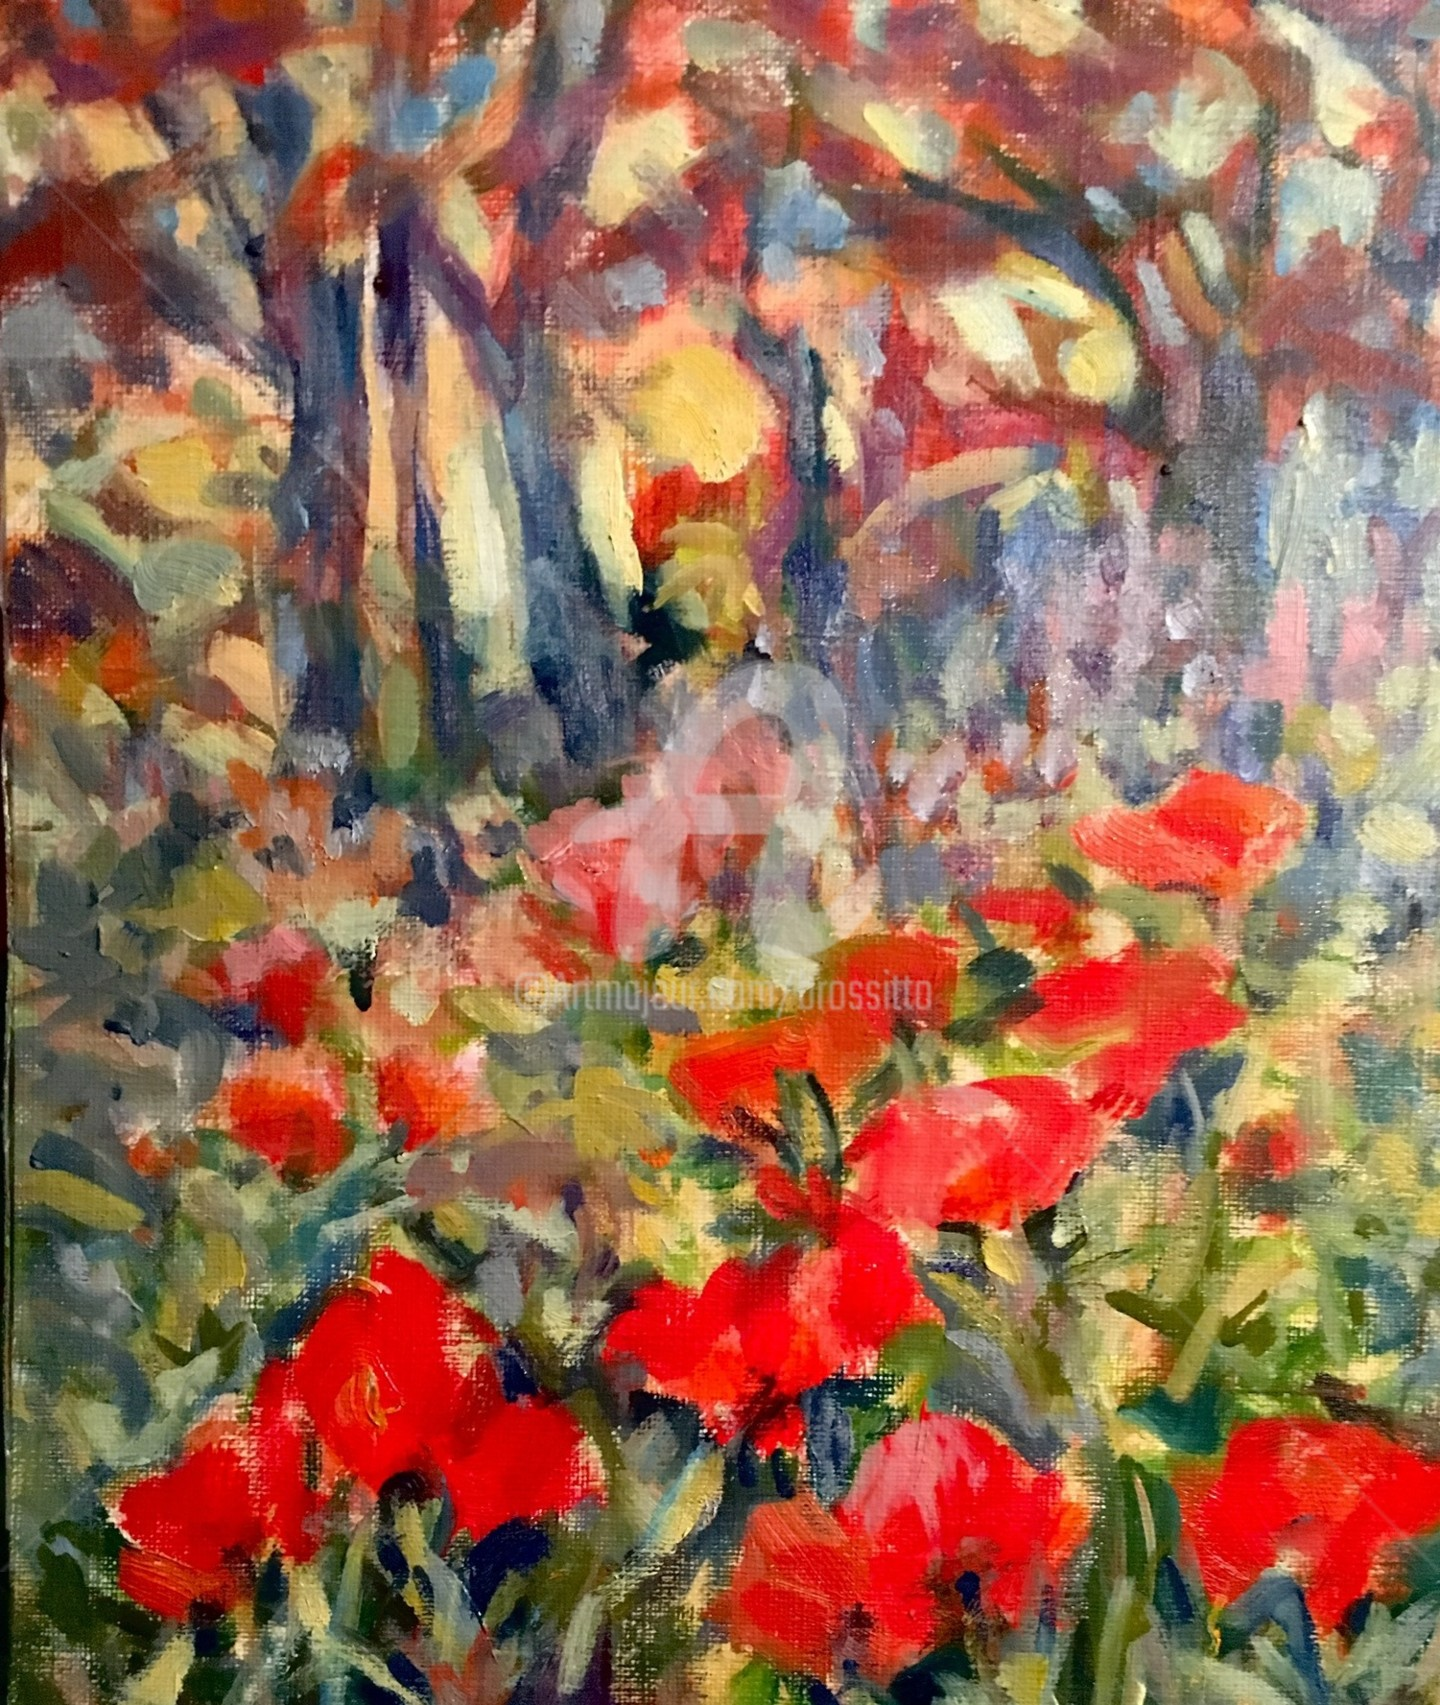 B.Rossitto - Lake Placid Poppies Study